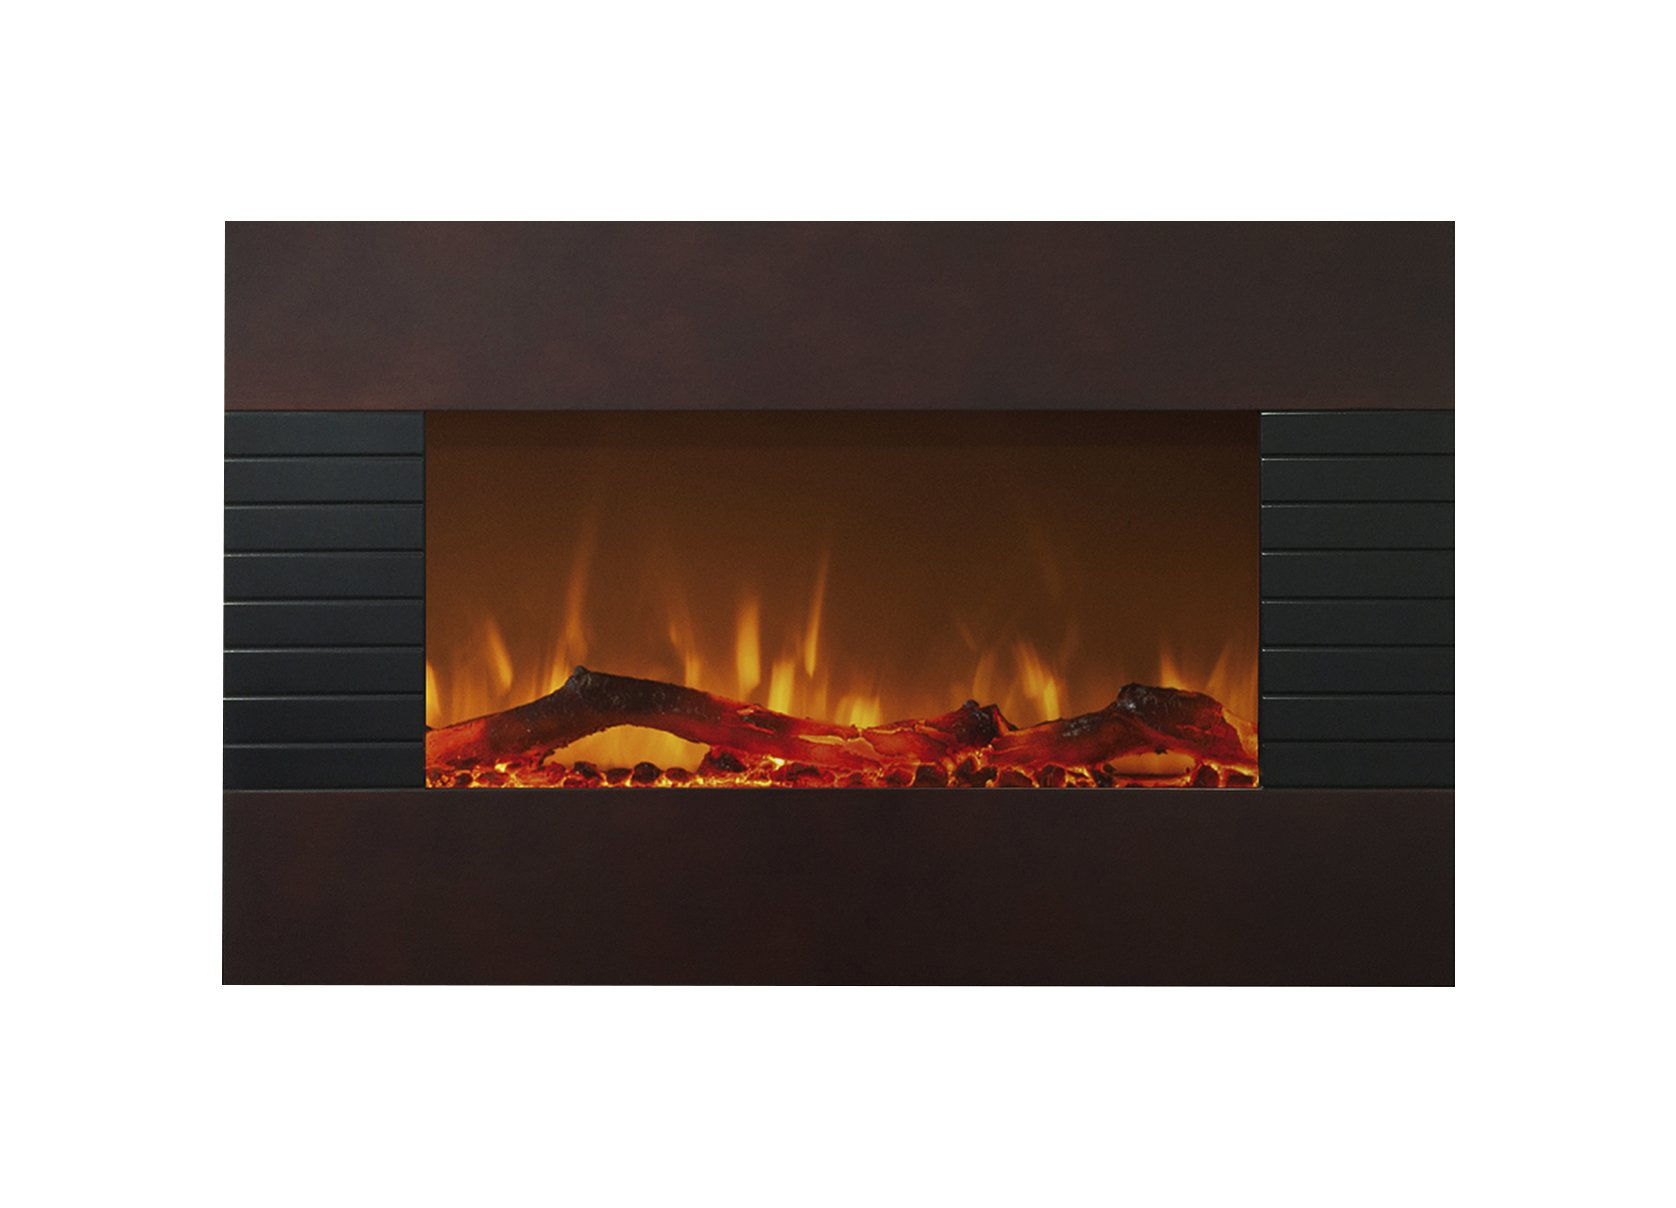 Northwest 80-422S Mahogany Fireplace With Wall Mount & Floor Stand, 36'' by Northwest (Image #1)